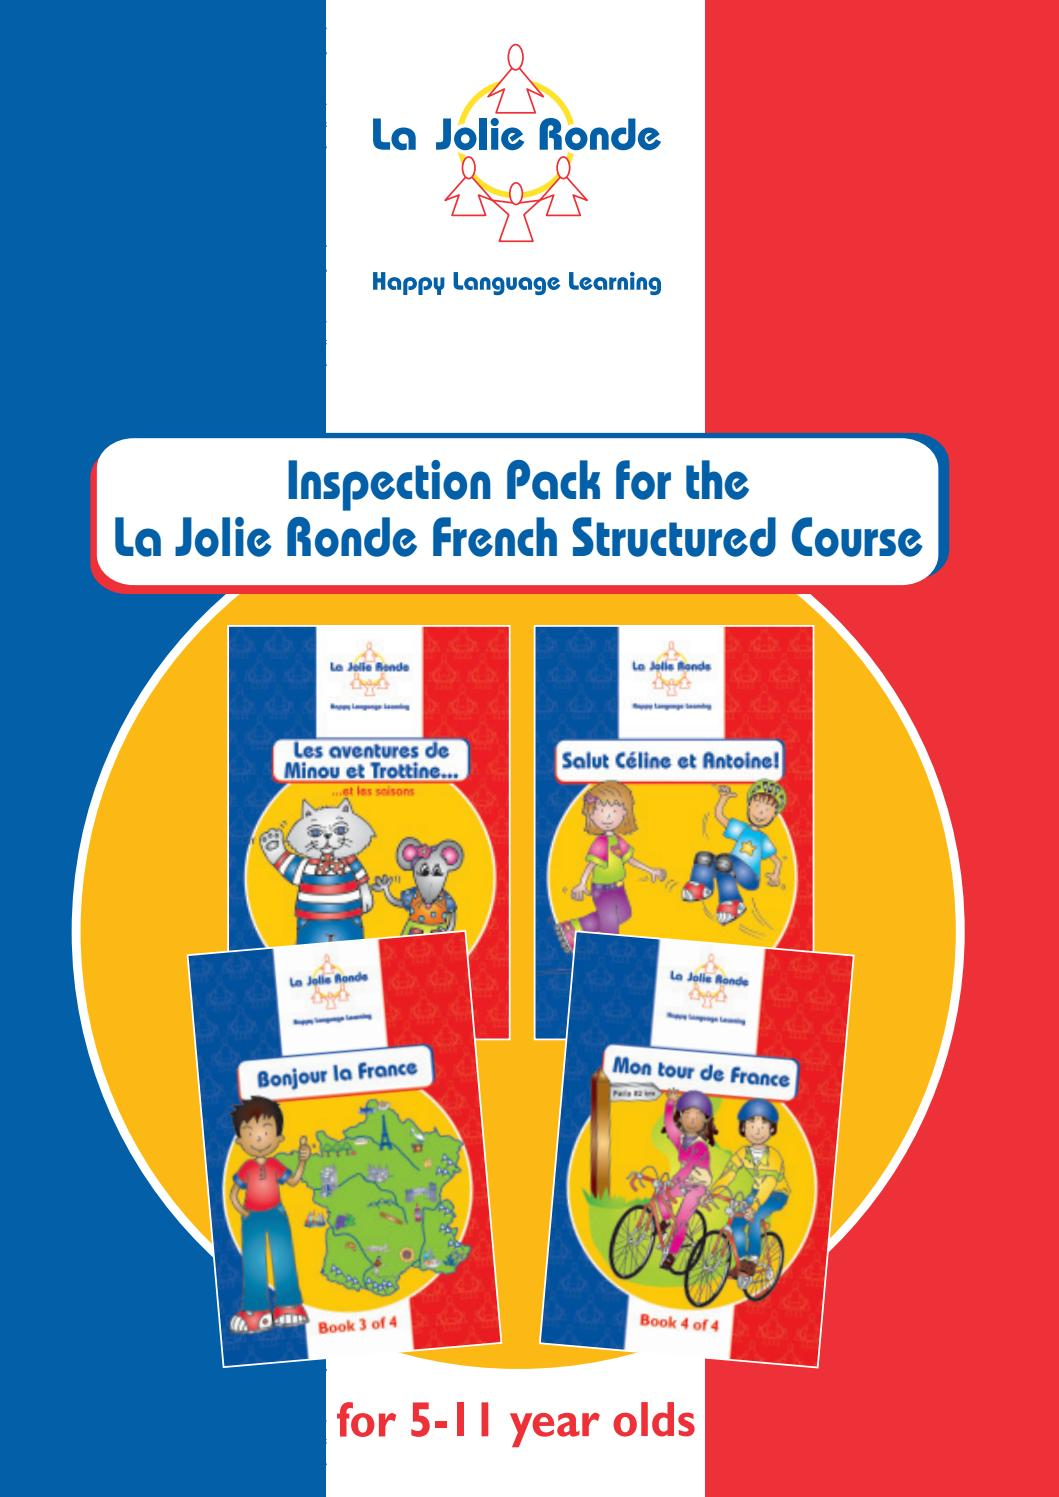 La jolie ronde french structured course inspection pack by la jolie la jolie ronde french structured course inspection pack by la jolie ronde issuu kristyandbryce Image collections